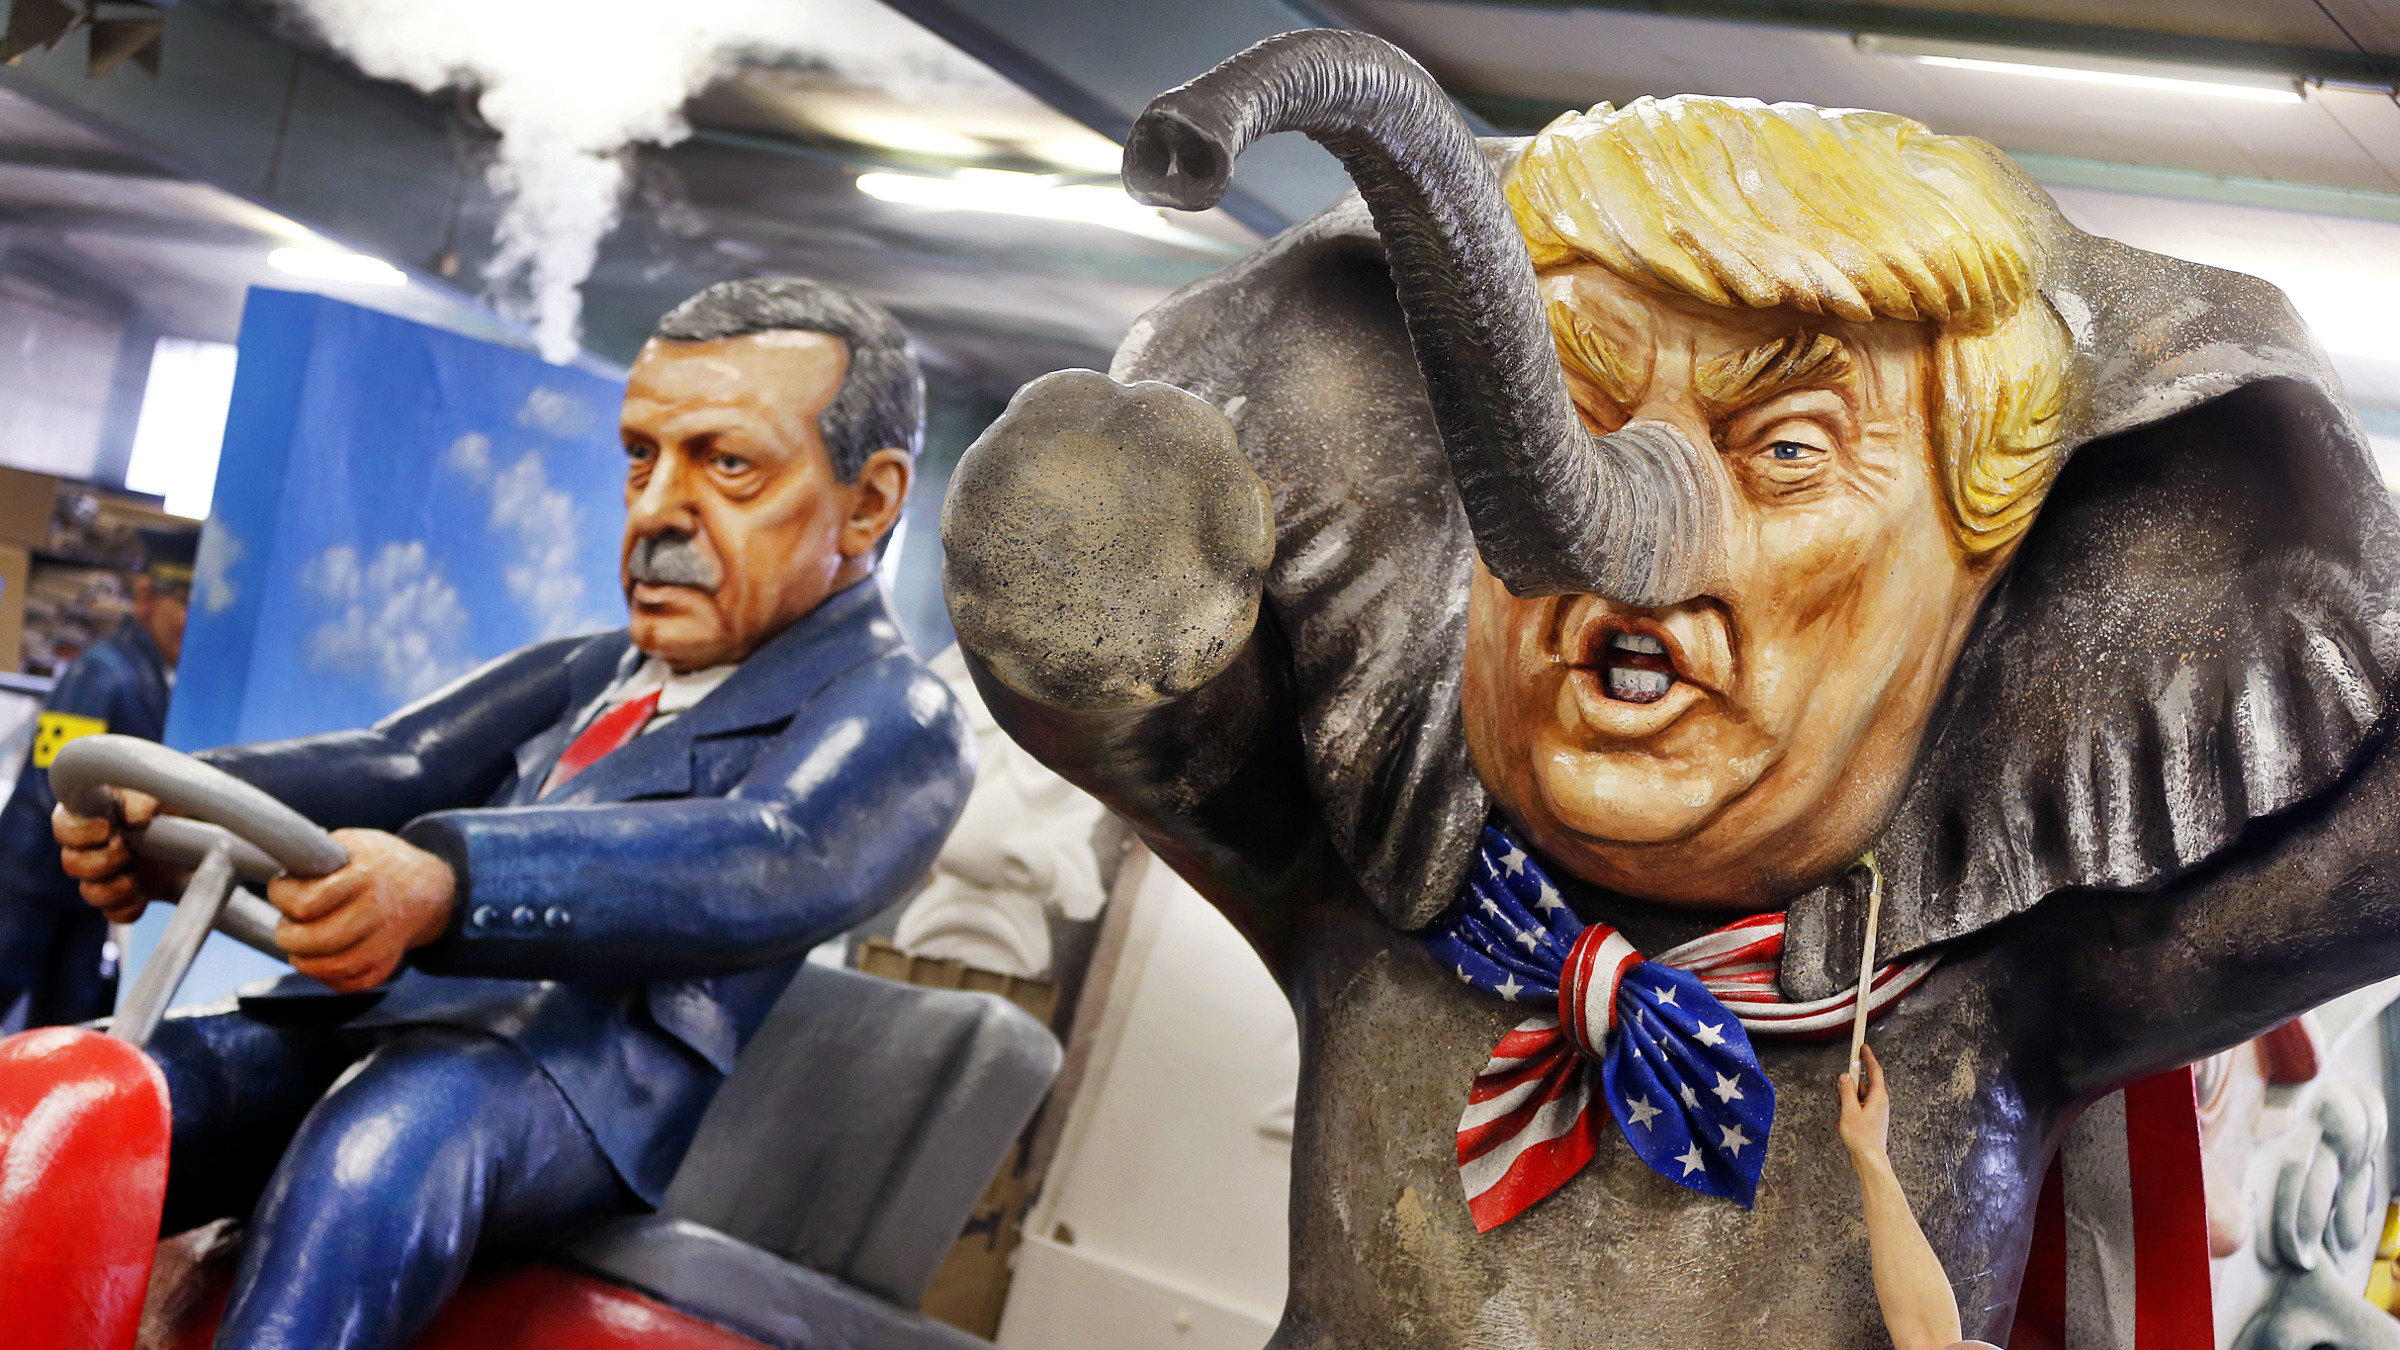 A worker poses with a brush in front of a figure depicting US President Donald Trump as an elephant and Turkish President Erdogan sitting on a bobby car during a press preview in a hall of the Main carnival club in Mainz, Germany, Tuesday, Feb. 21, 2017. The figure is part of various carnival floats of the Rose Monday procession in Mainz.